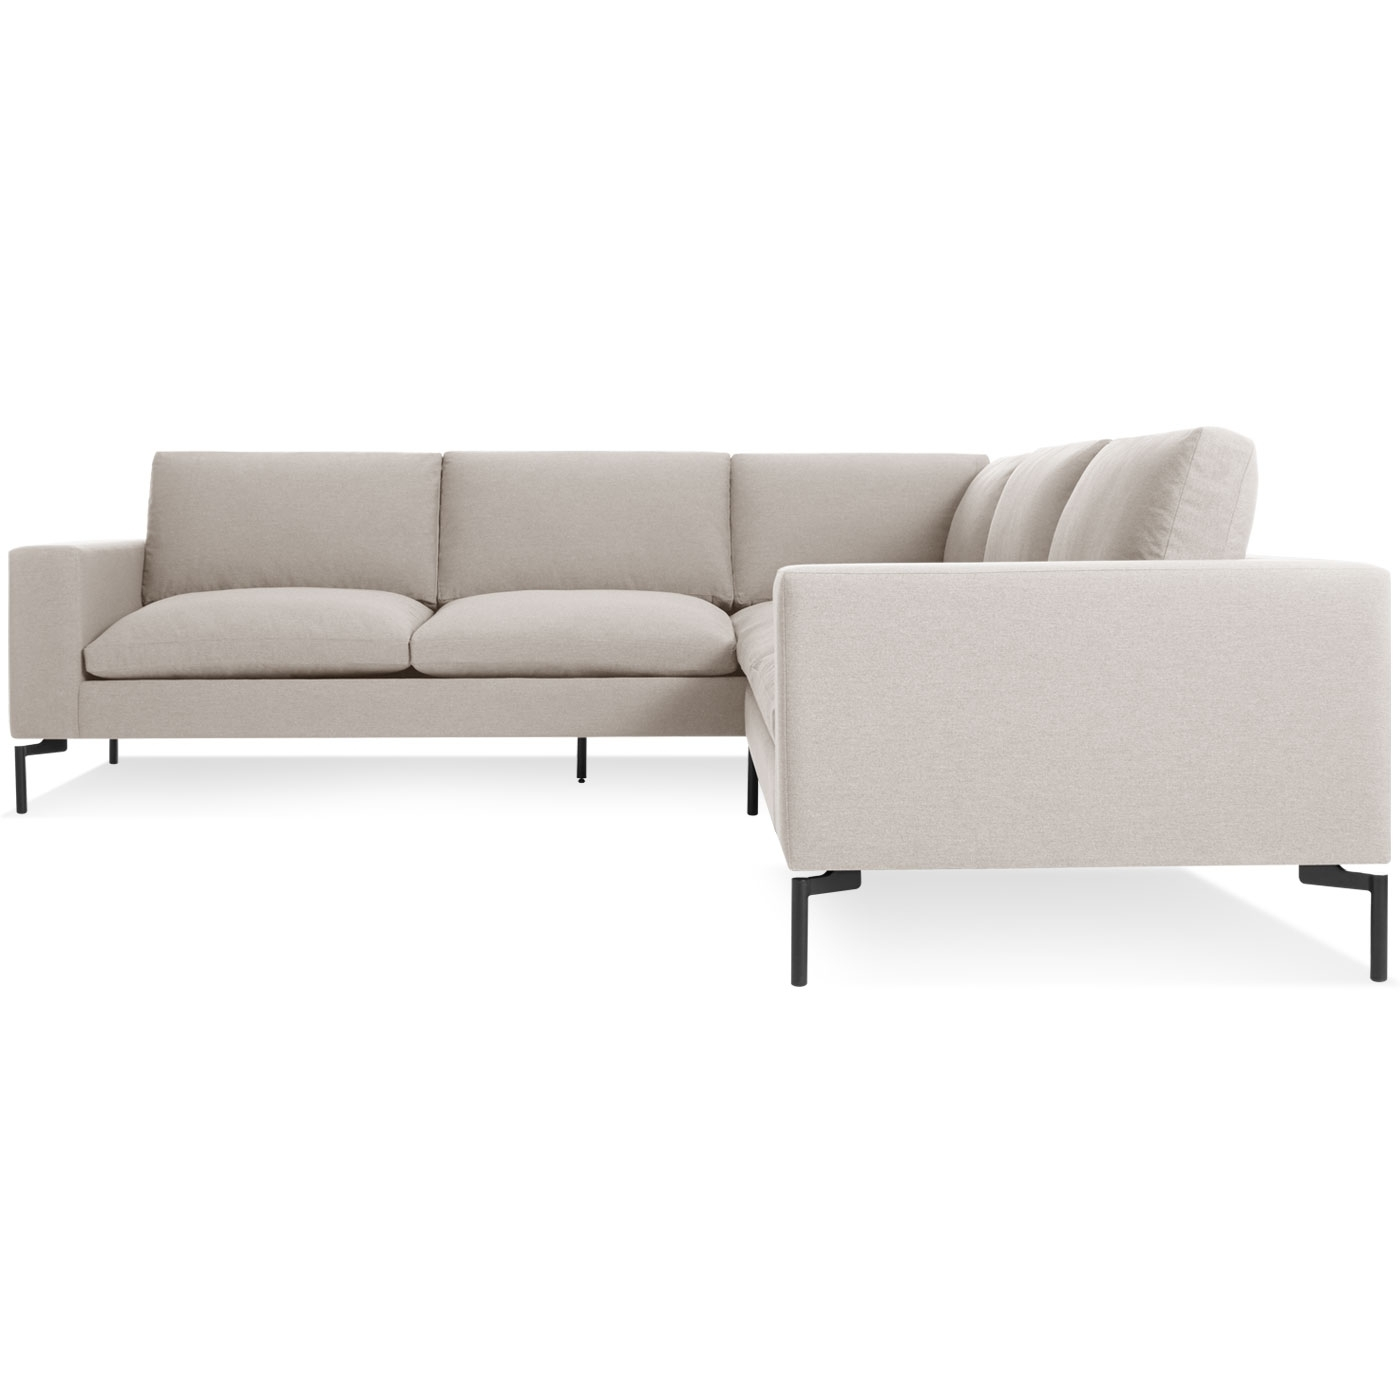 New Standard Small Sectional Sofa – Modern Sofas | Blu Dot Regarding Small Sectional Sofas (View 9 of 10)